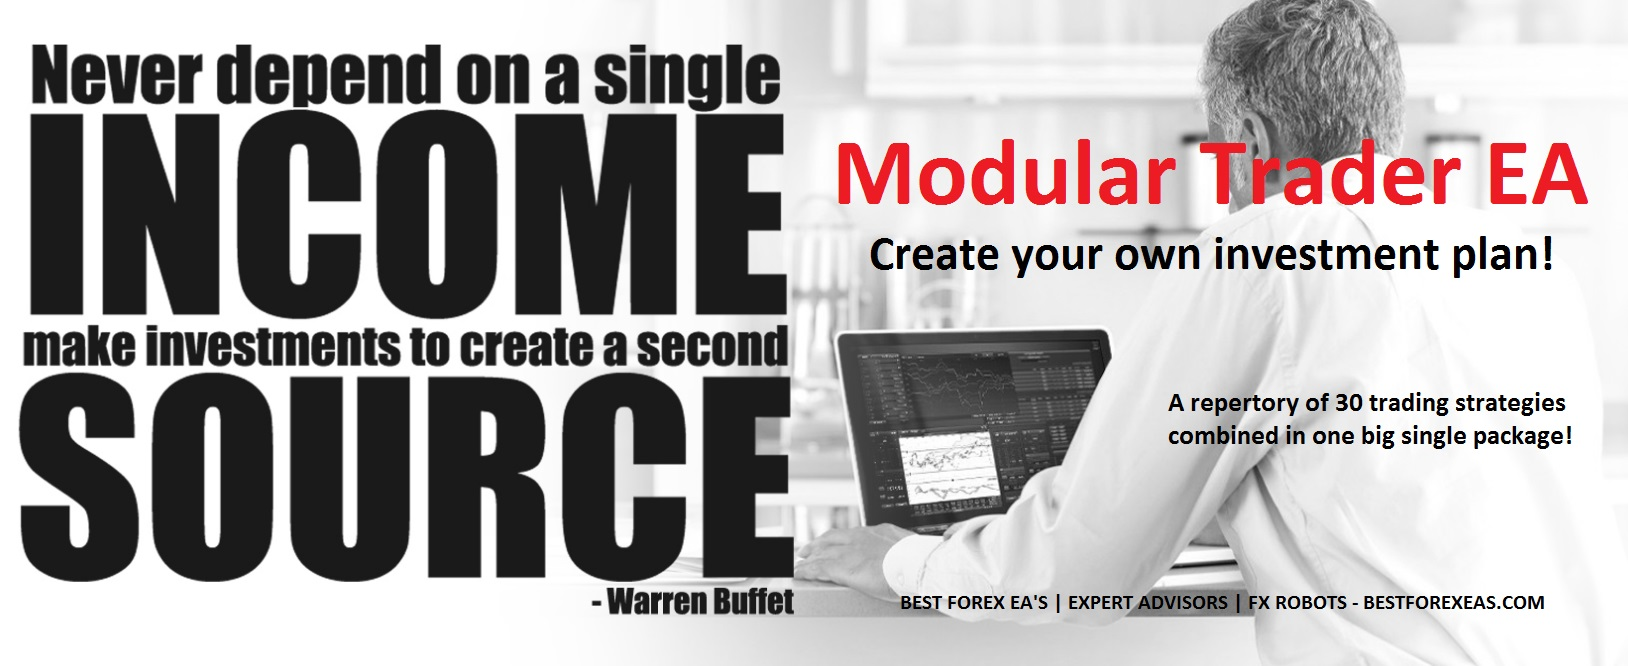 Modular Trader EA Review - 30 Trading Strategies For The Best Forex Expert Advisor For Metatrader 4 (MT4) And FX Trading Robot Created By Vladimir Antonov And His Accuracy Investment Group